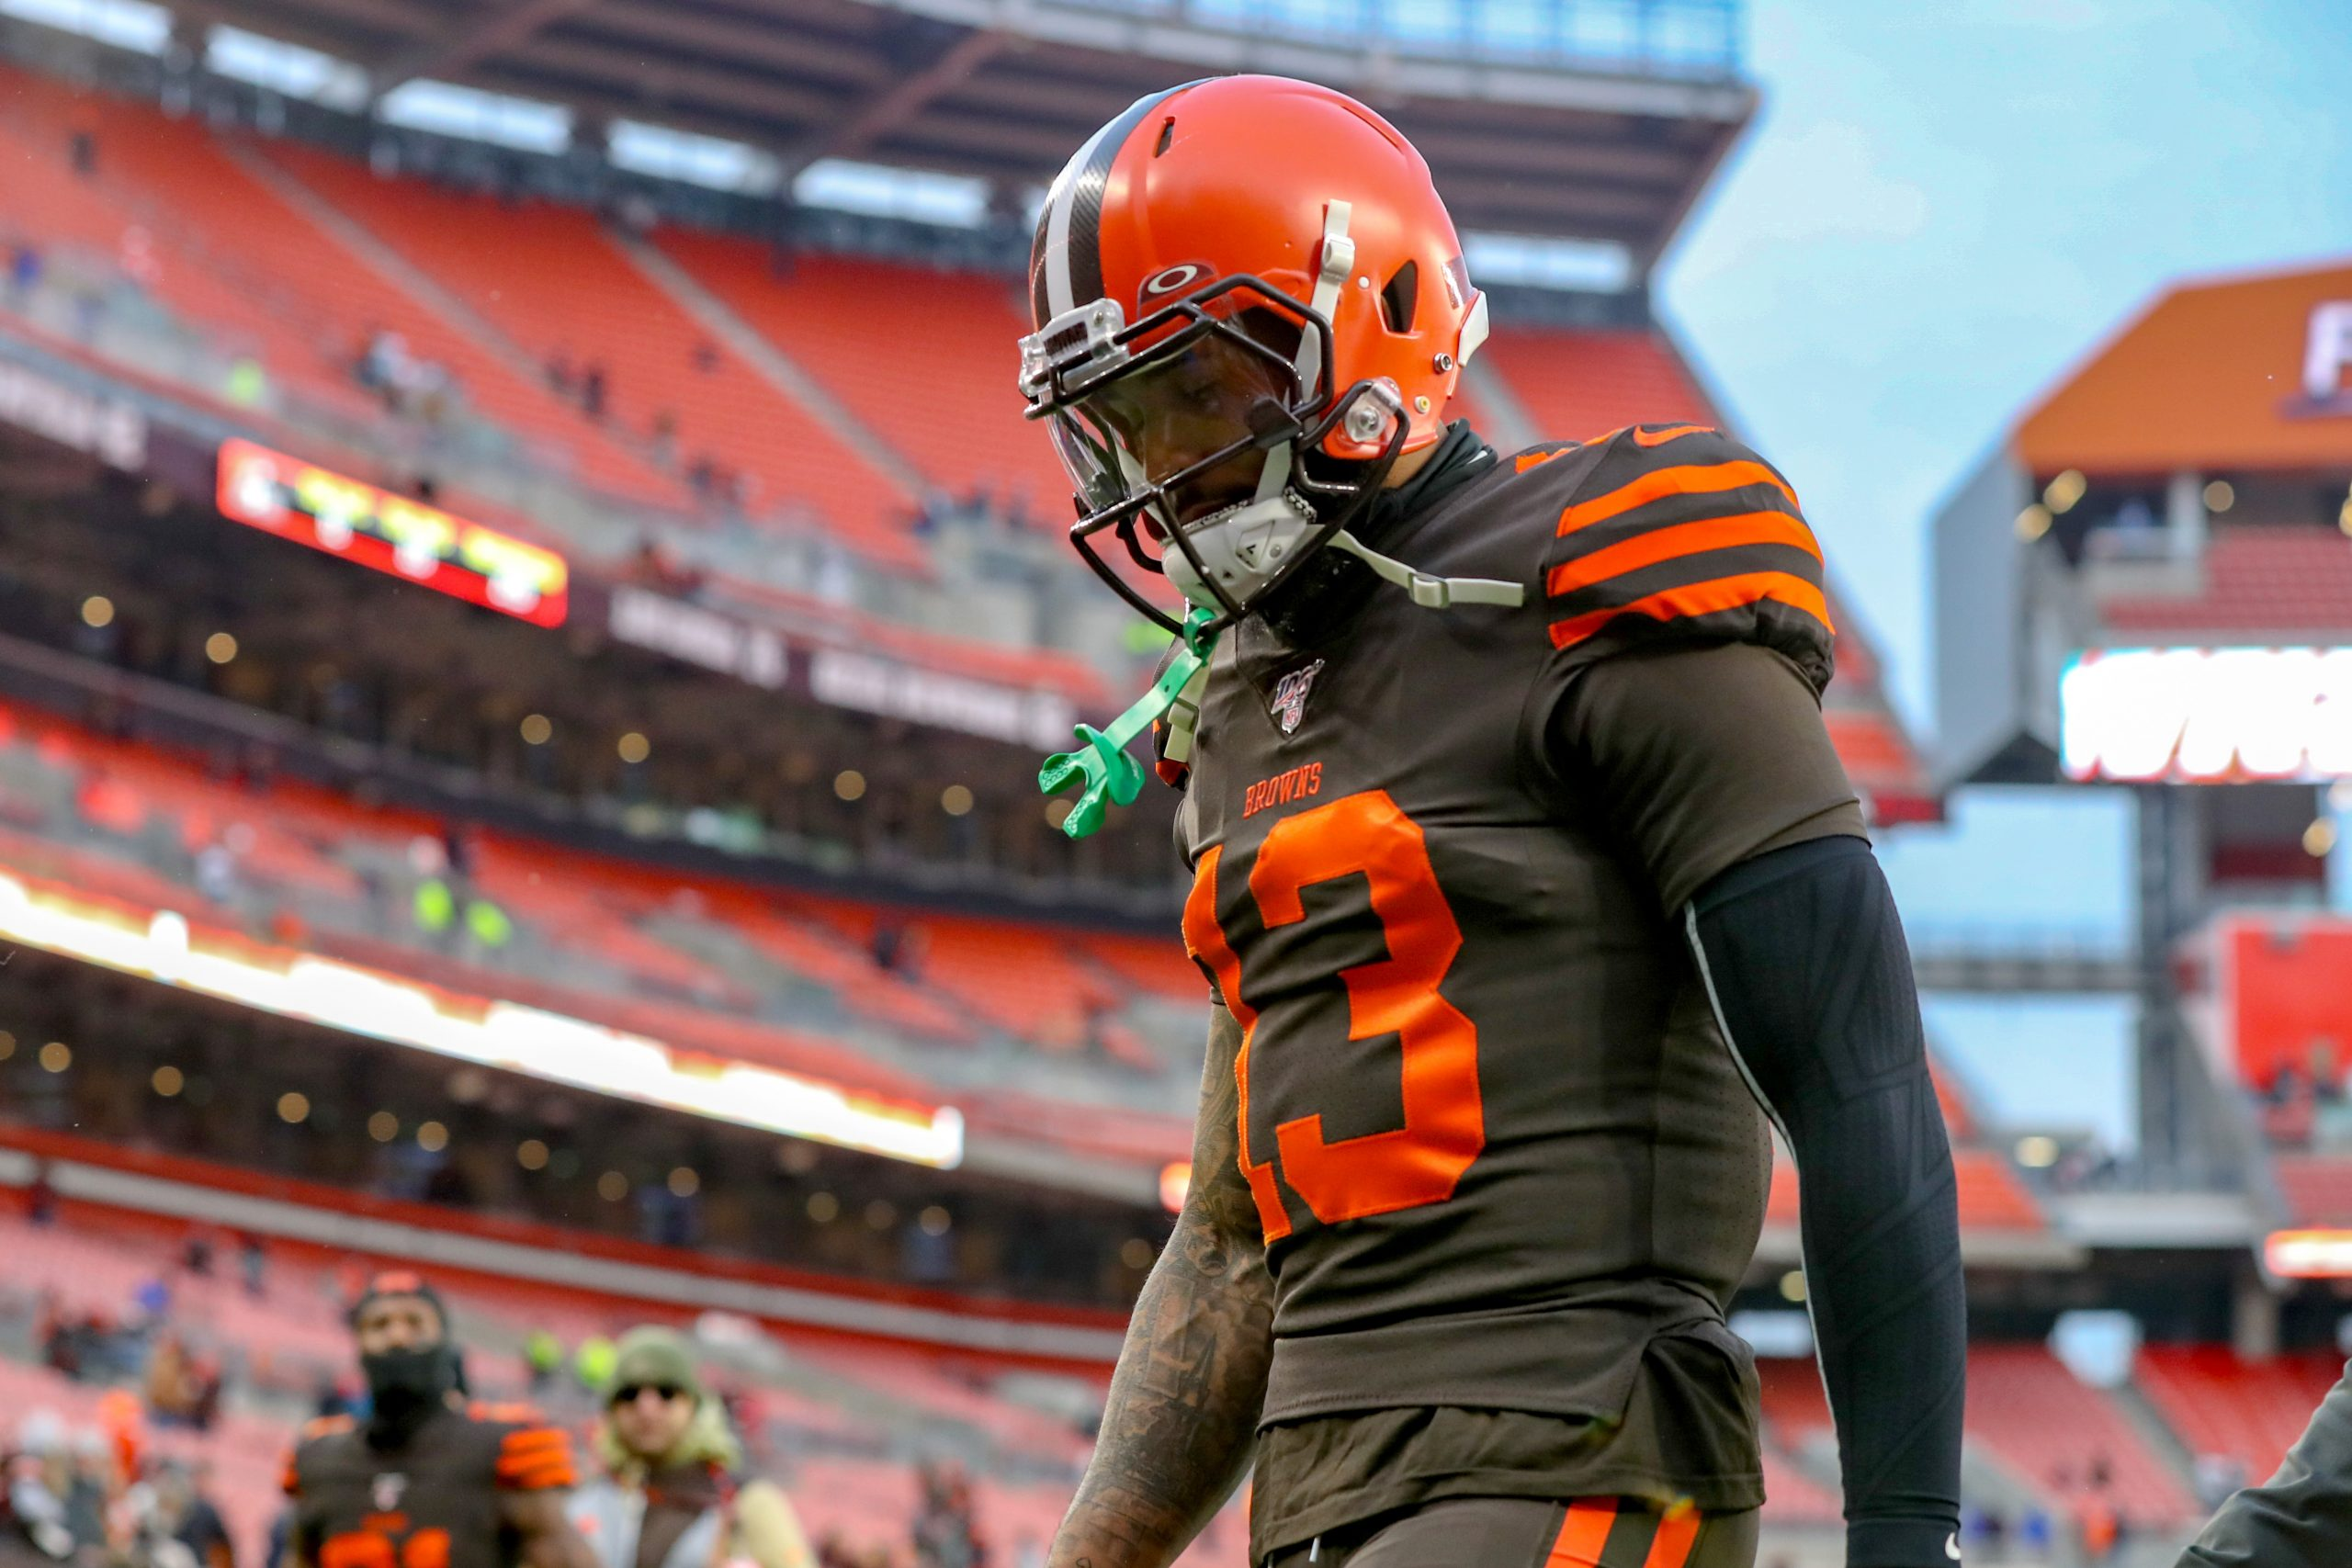 CLEVELAND, OH - DECEMBER 08: Cleveland Browns wide receiver Odell Beckham Jr. (13) leaves the field following the Nation